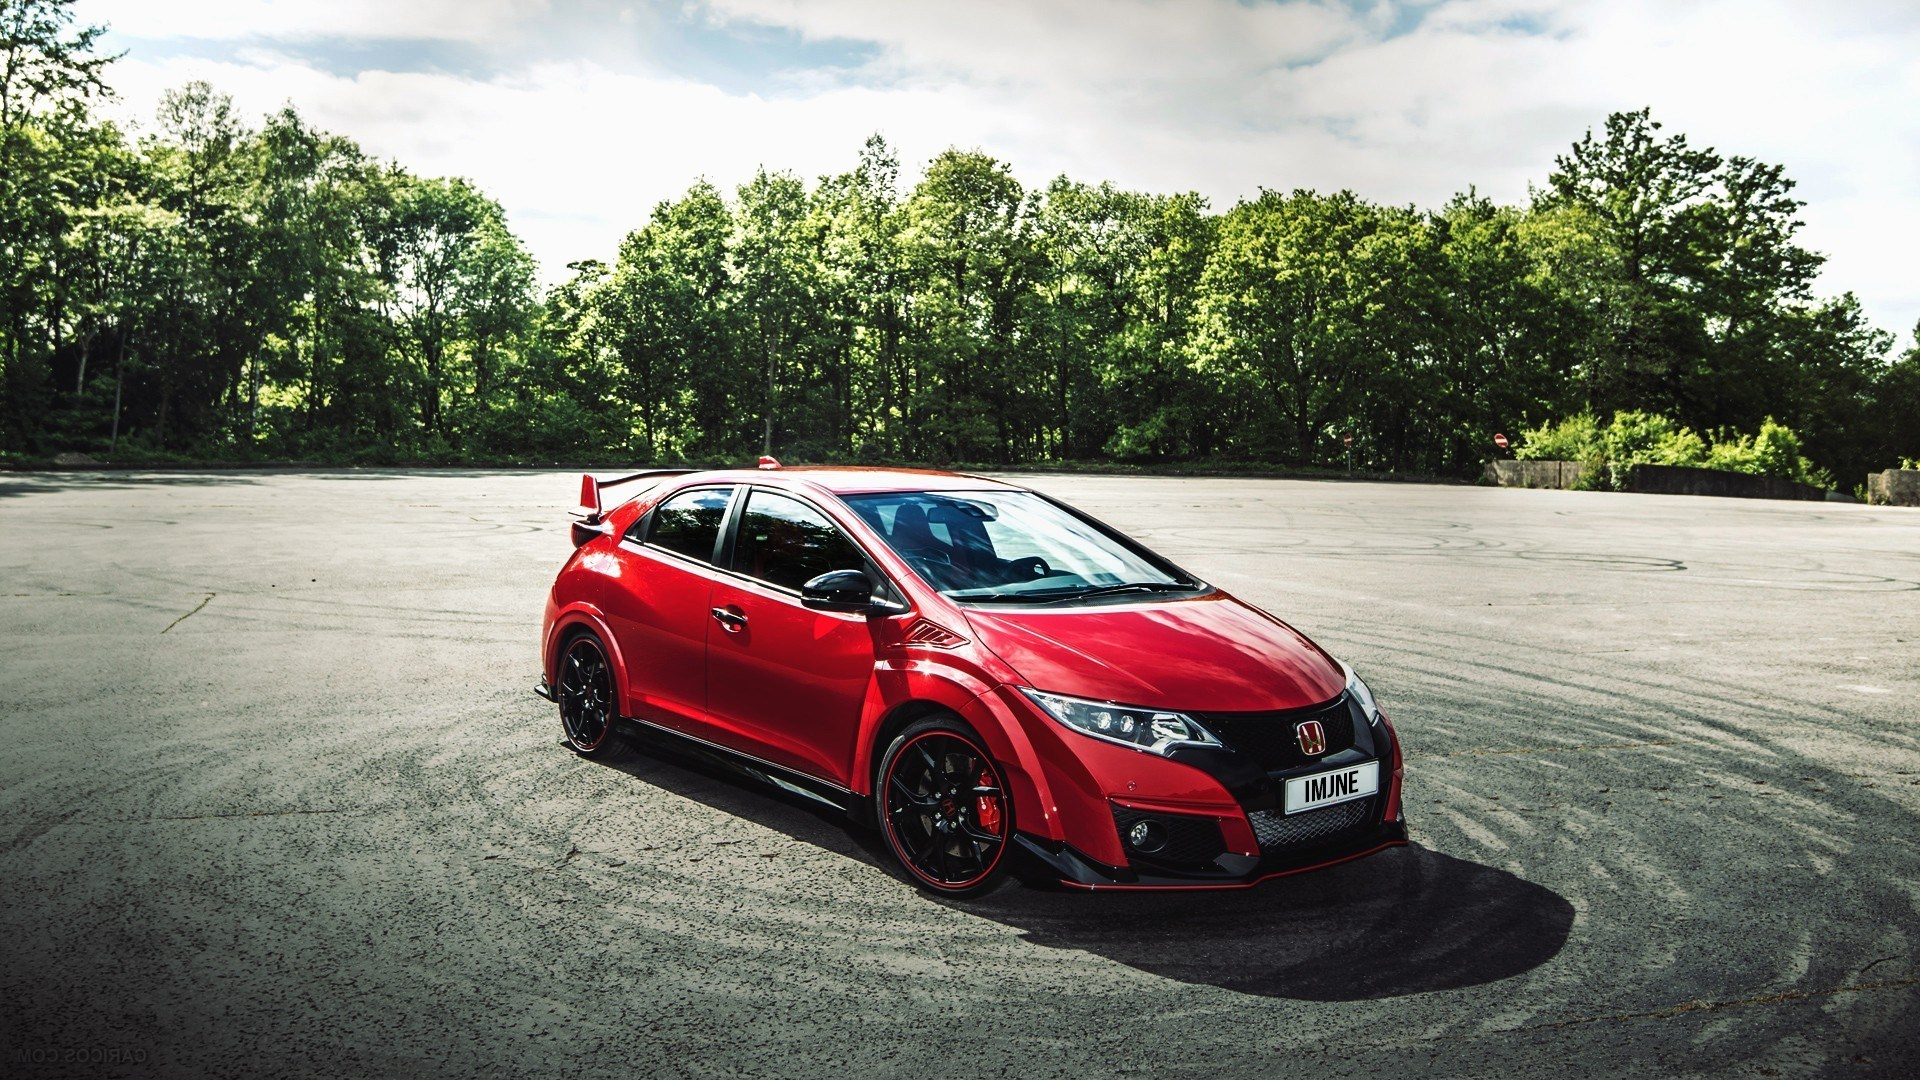 Car Vehicle Honda Civic Type R Wallpapers Hd Desktop Civic Type